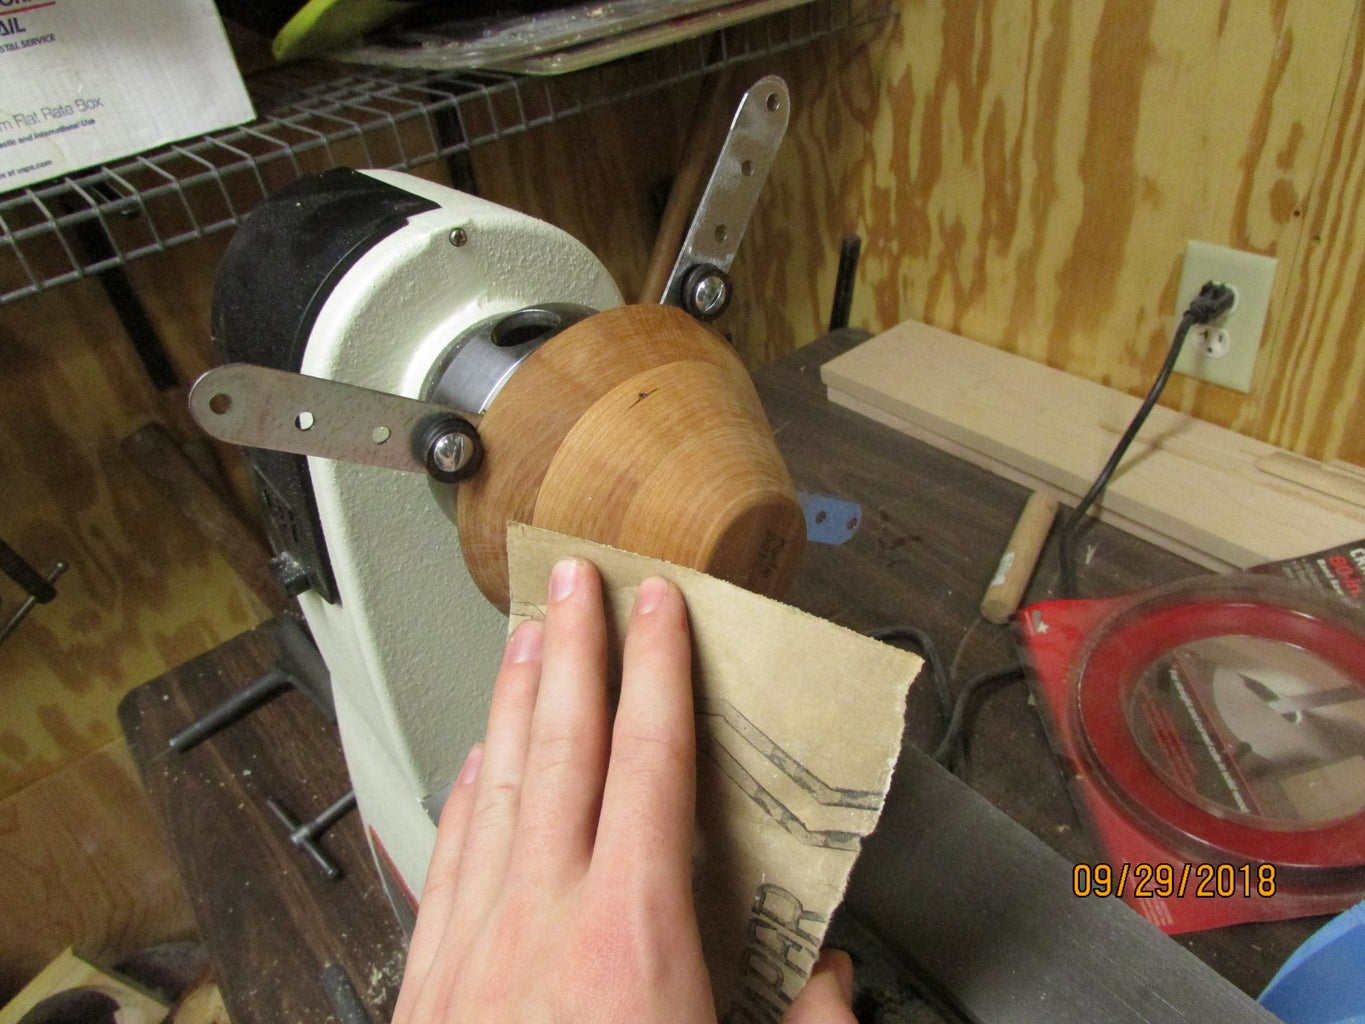 Attaching to the Lathe